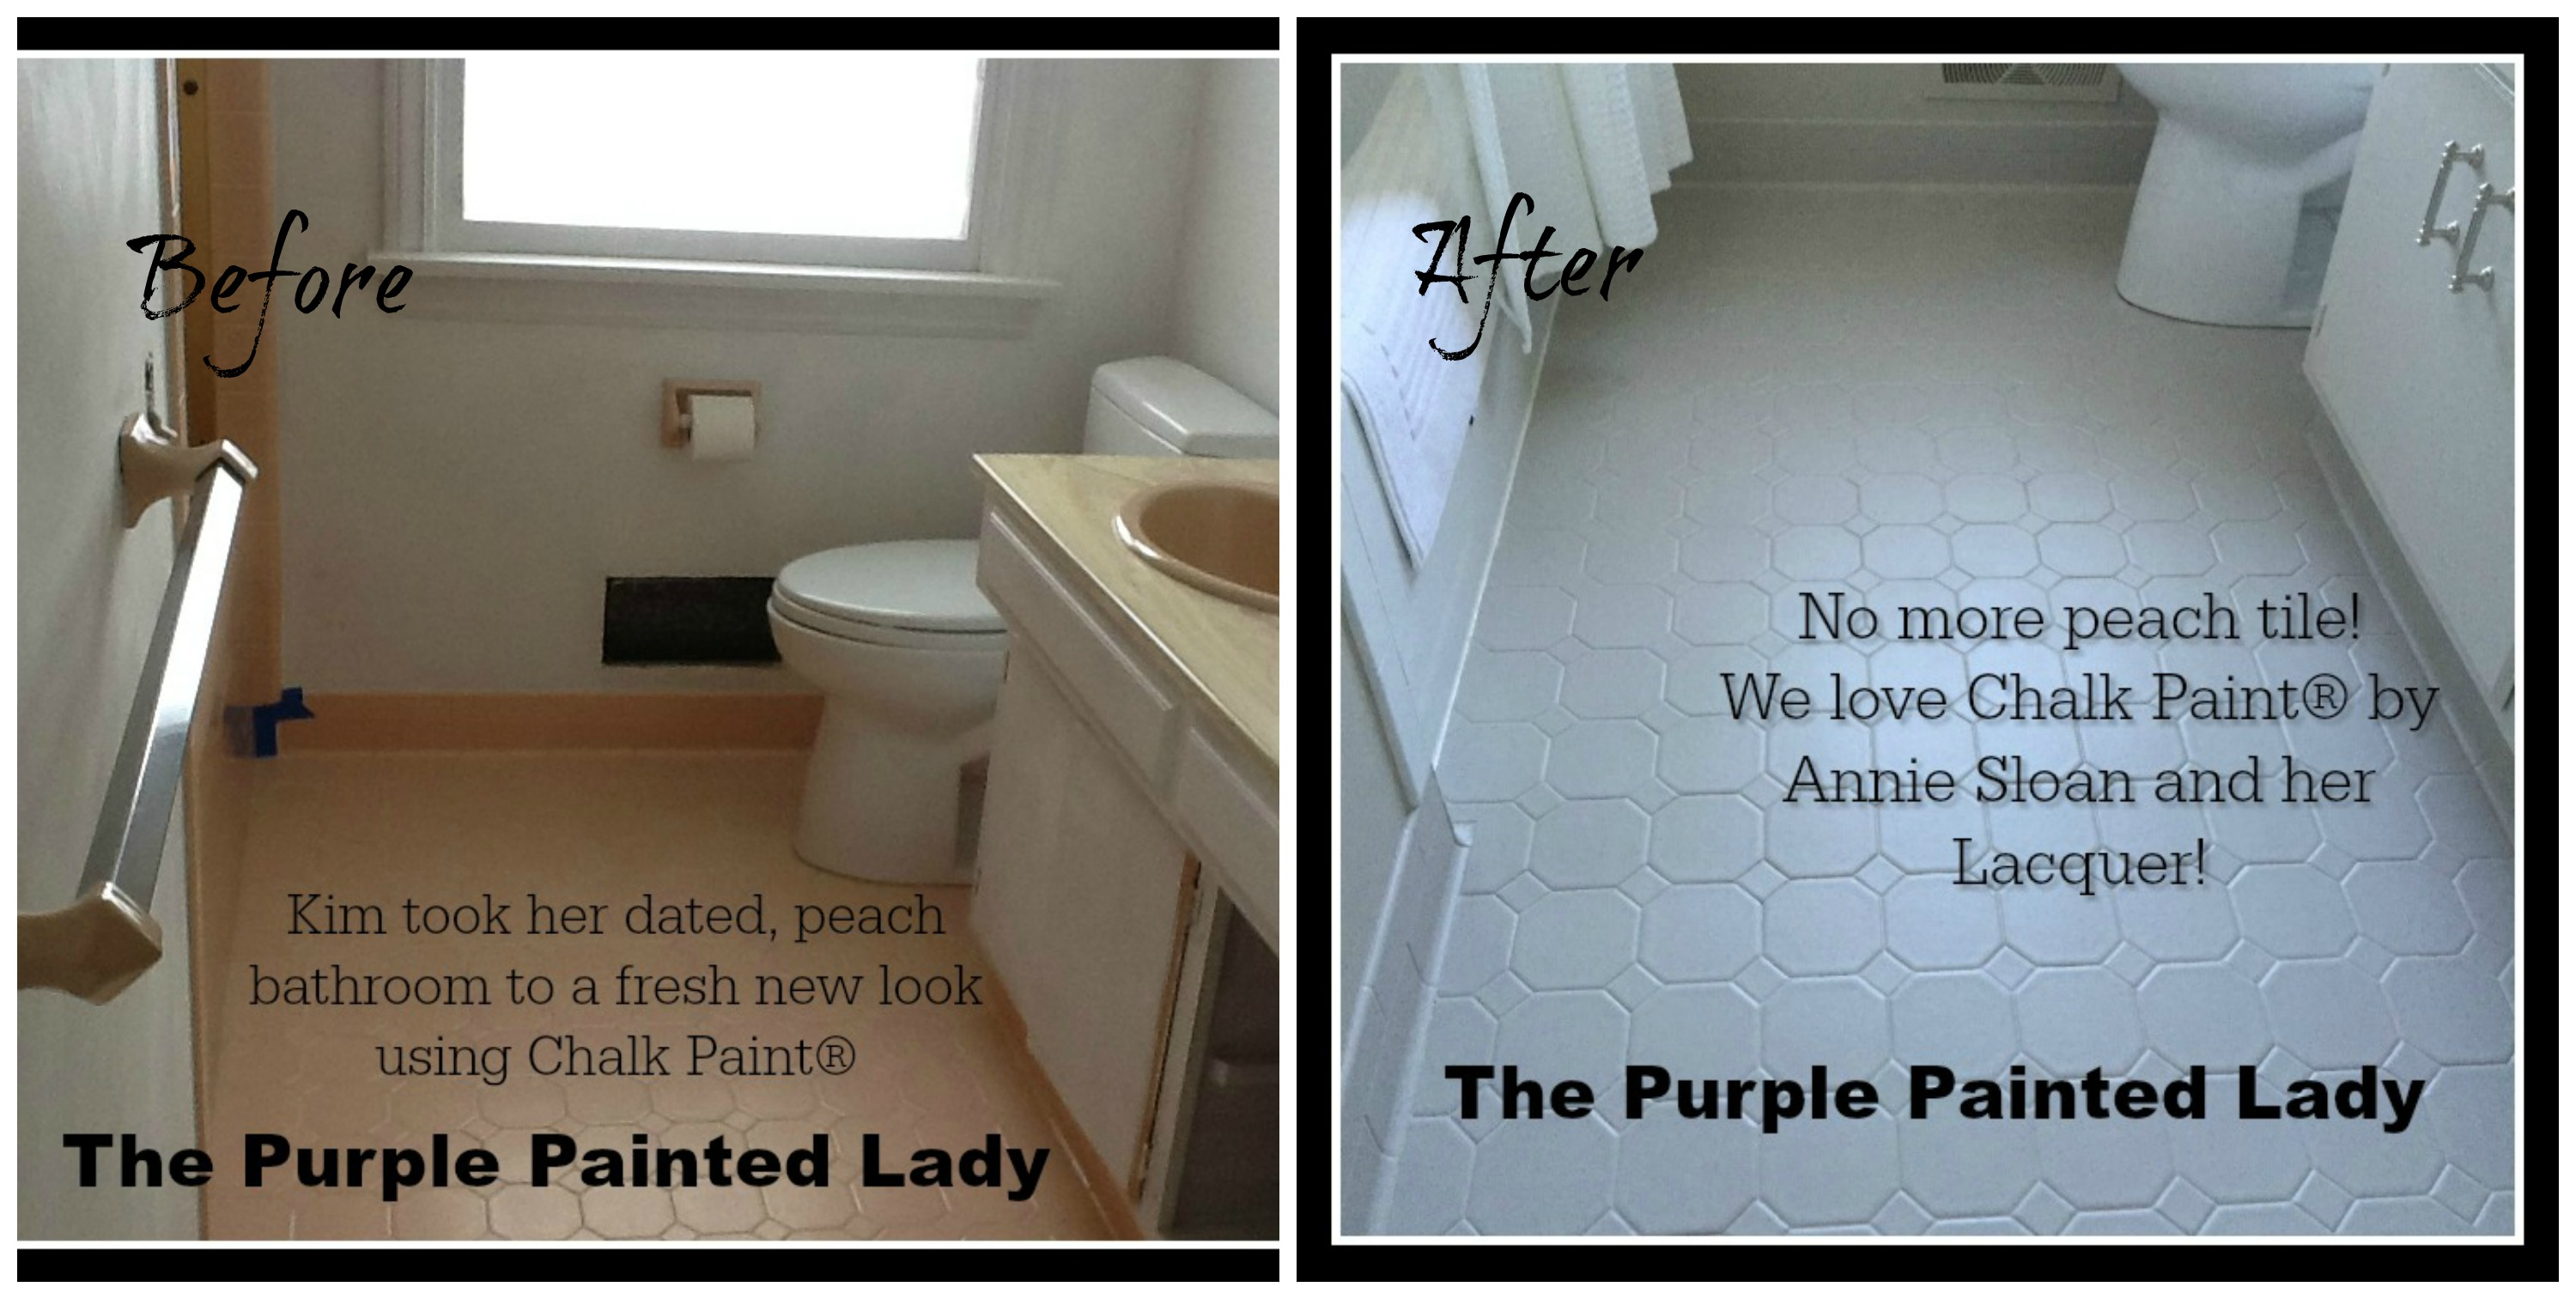 Painting tile in the bathroom with chalk paint the purple the purple painted lady kim gray before after chalk paint annie sloan dailygadgetfo Image collections